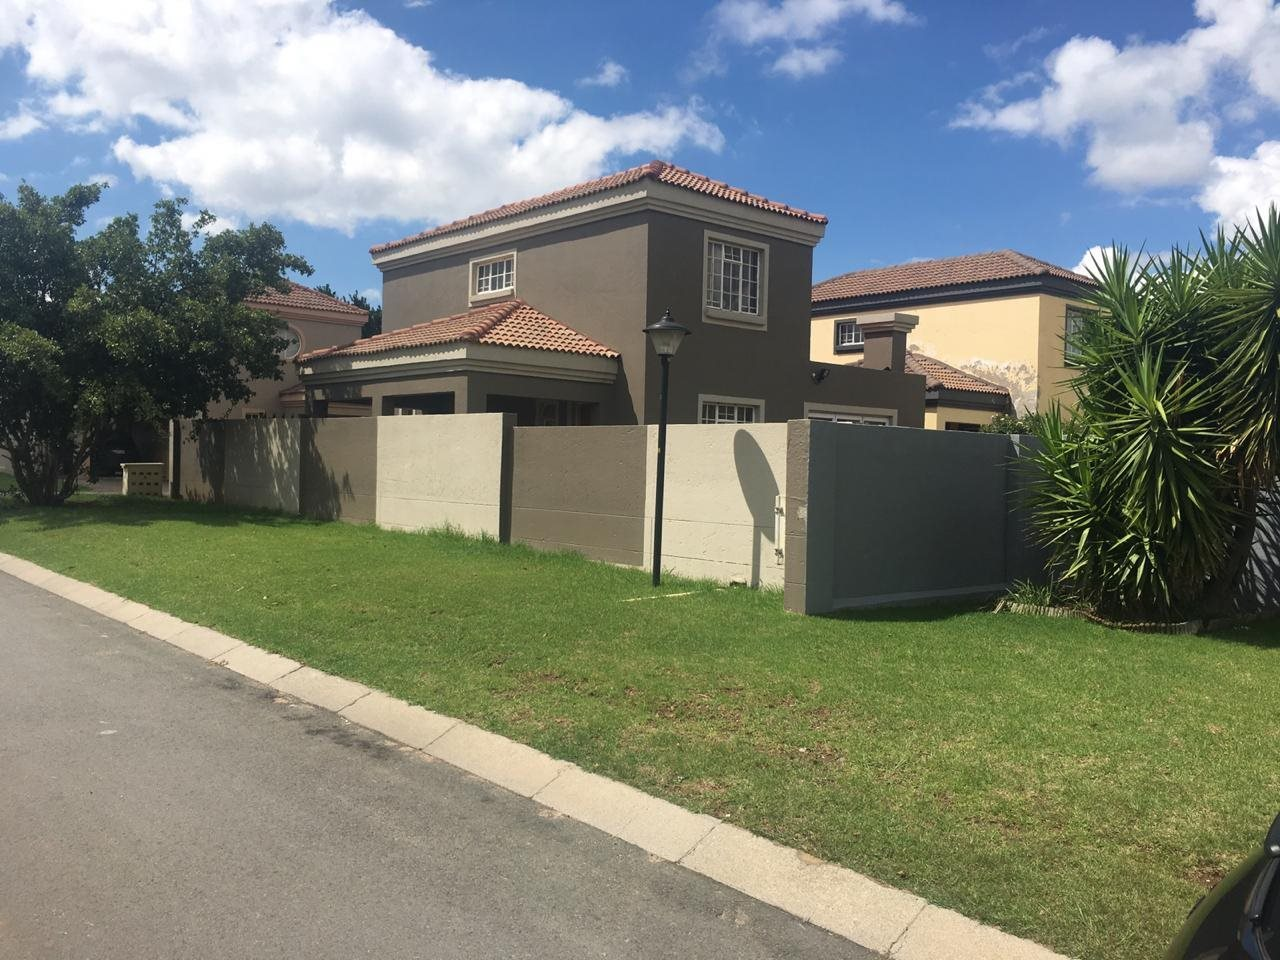 Brakpan, Brakpan North Property  | Houses For Sale Brakpan North, Brakpan North, Townhouse 2 bedrooms property for sale Price:650,000